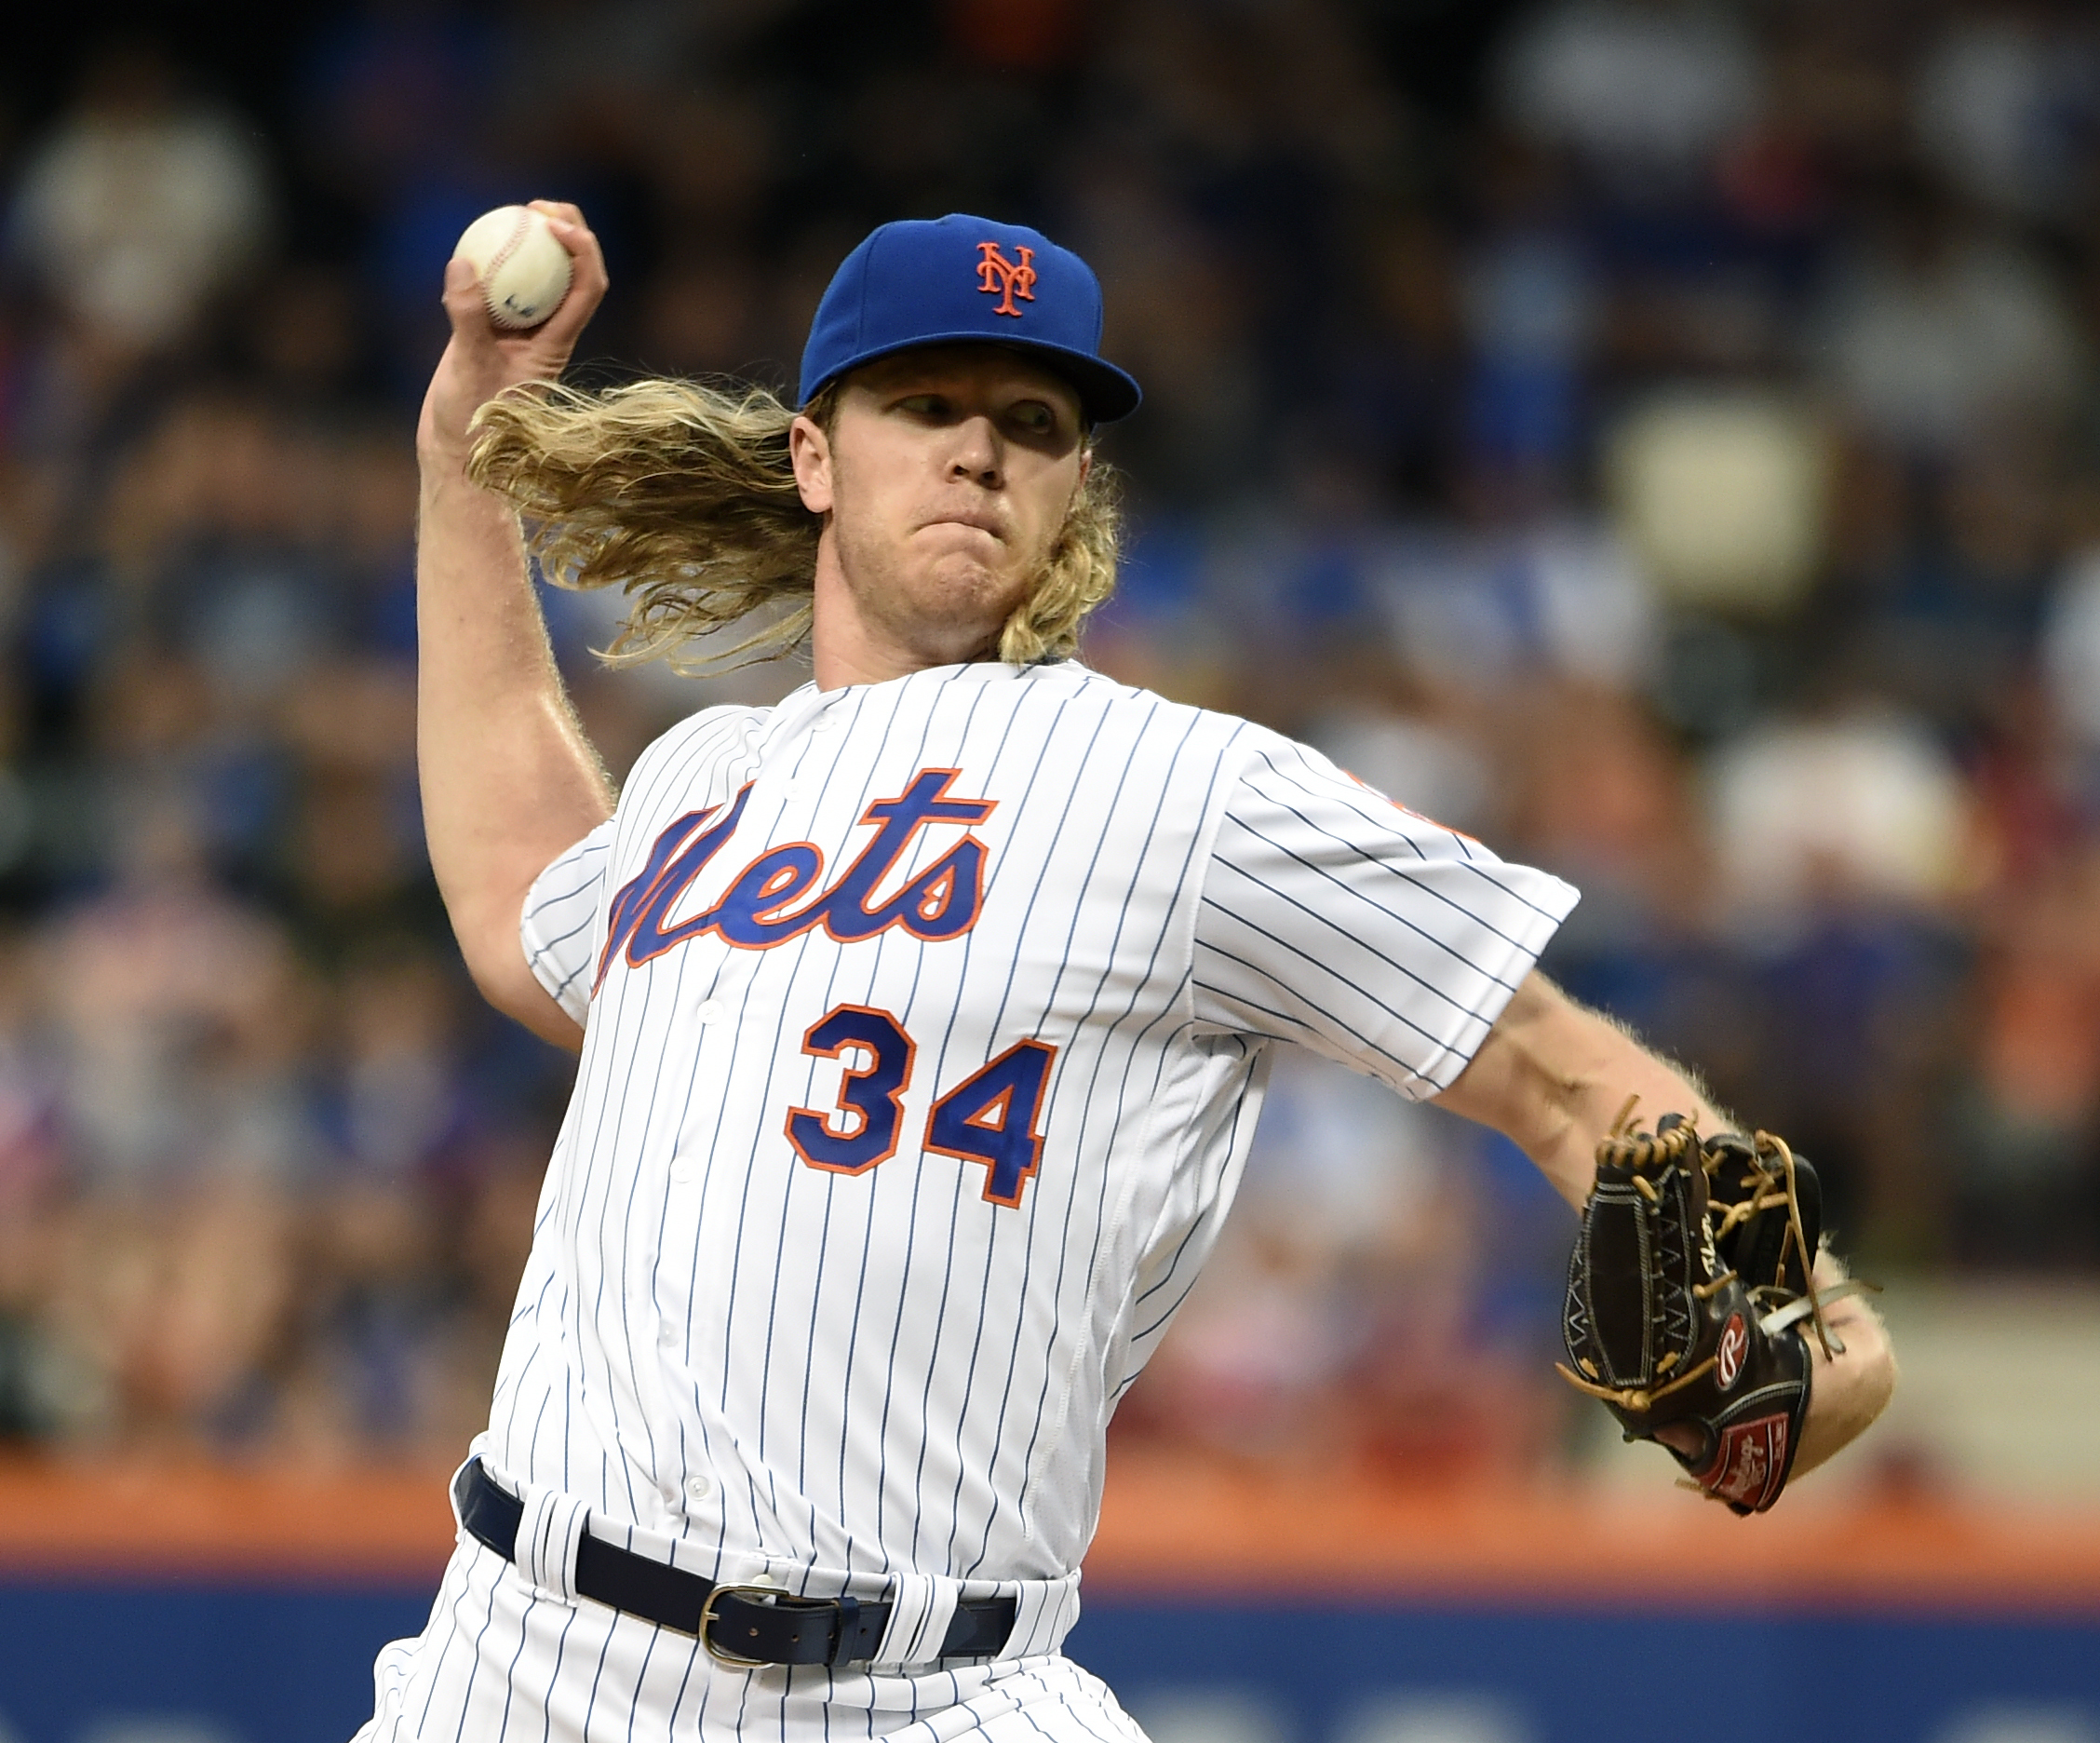 New York Mets starter Noah Syndergaard pitches against the Washington Nationals in the first inning of a baseball game, Friday, July 8, 2016, in New York. (AP Photo/Kathy Kmonicek)